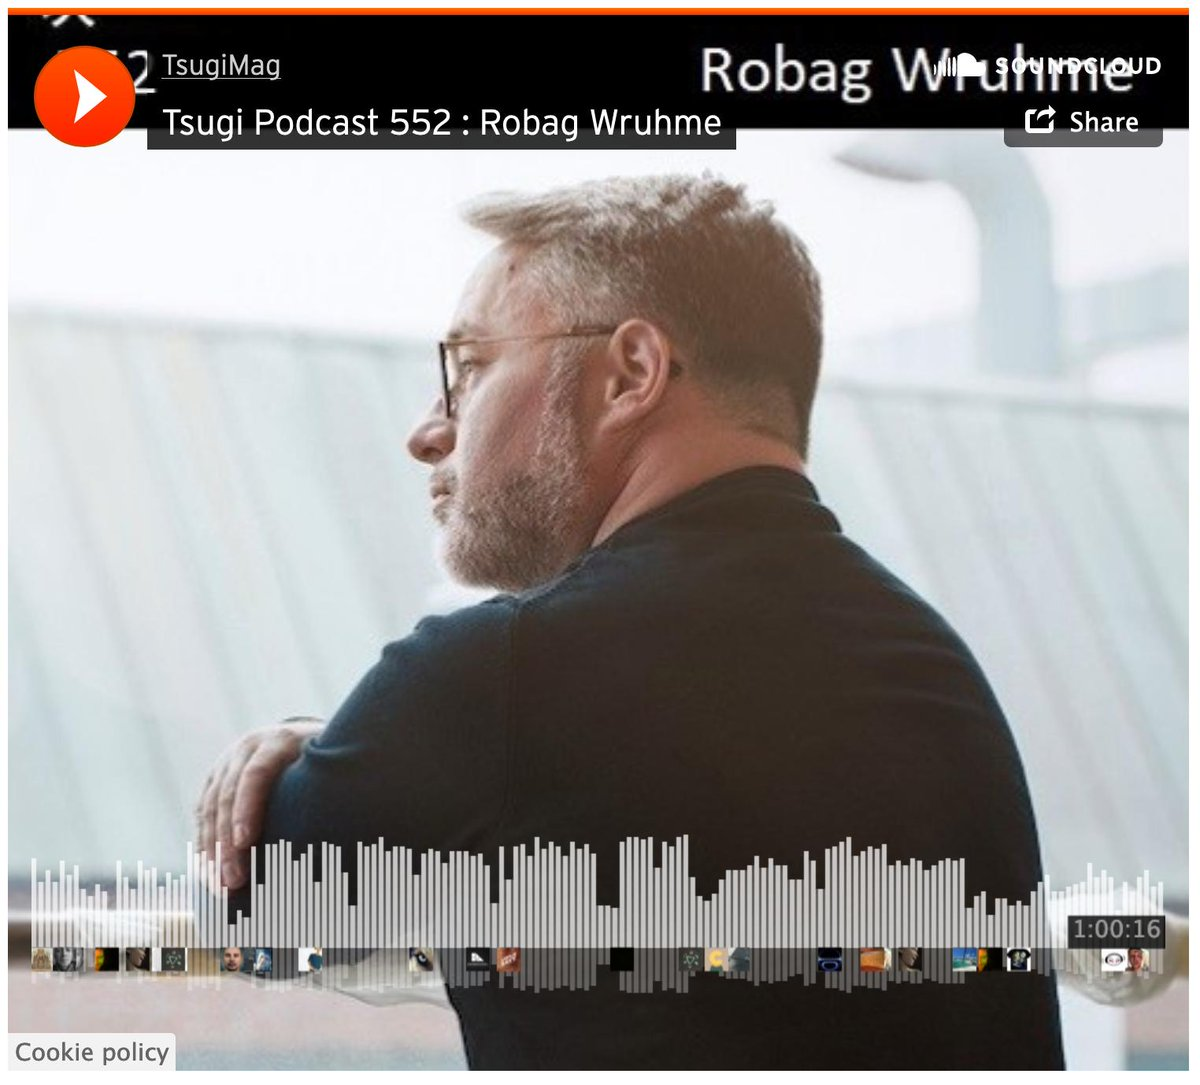 Hello, here is Robag Wruhme, this room is fucking big. Today I made a really nice mix for you. Enjoy this journey through my little history of music.- listen to the latest podcast of @robagwruhme for @tsugimag! Album available here: pampa-records.lnk.to/RobagWruhme_Ve…